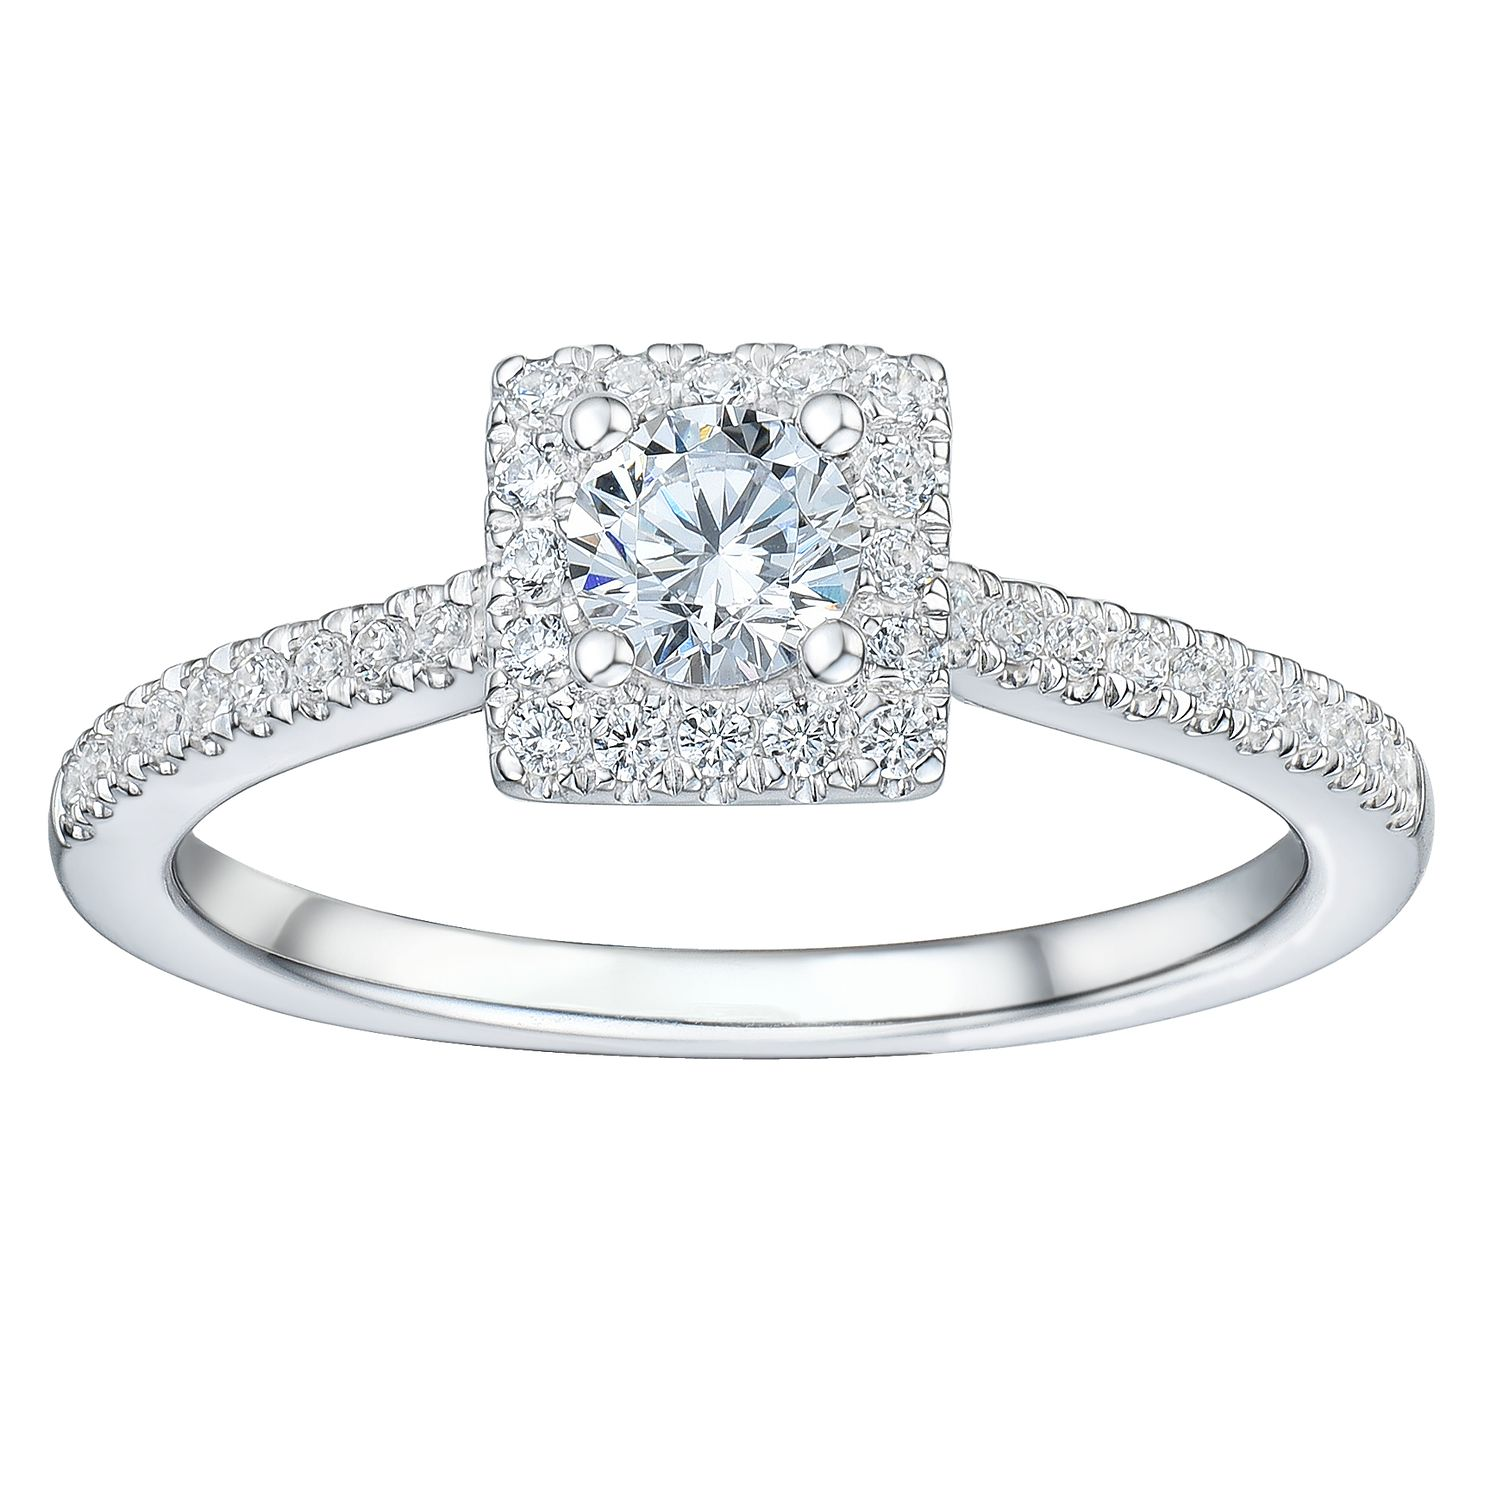 Tolkowsky 18ct White Gold 1/2ct Solitaire Square Halo Ring - Product number 2476207